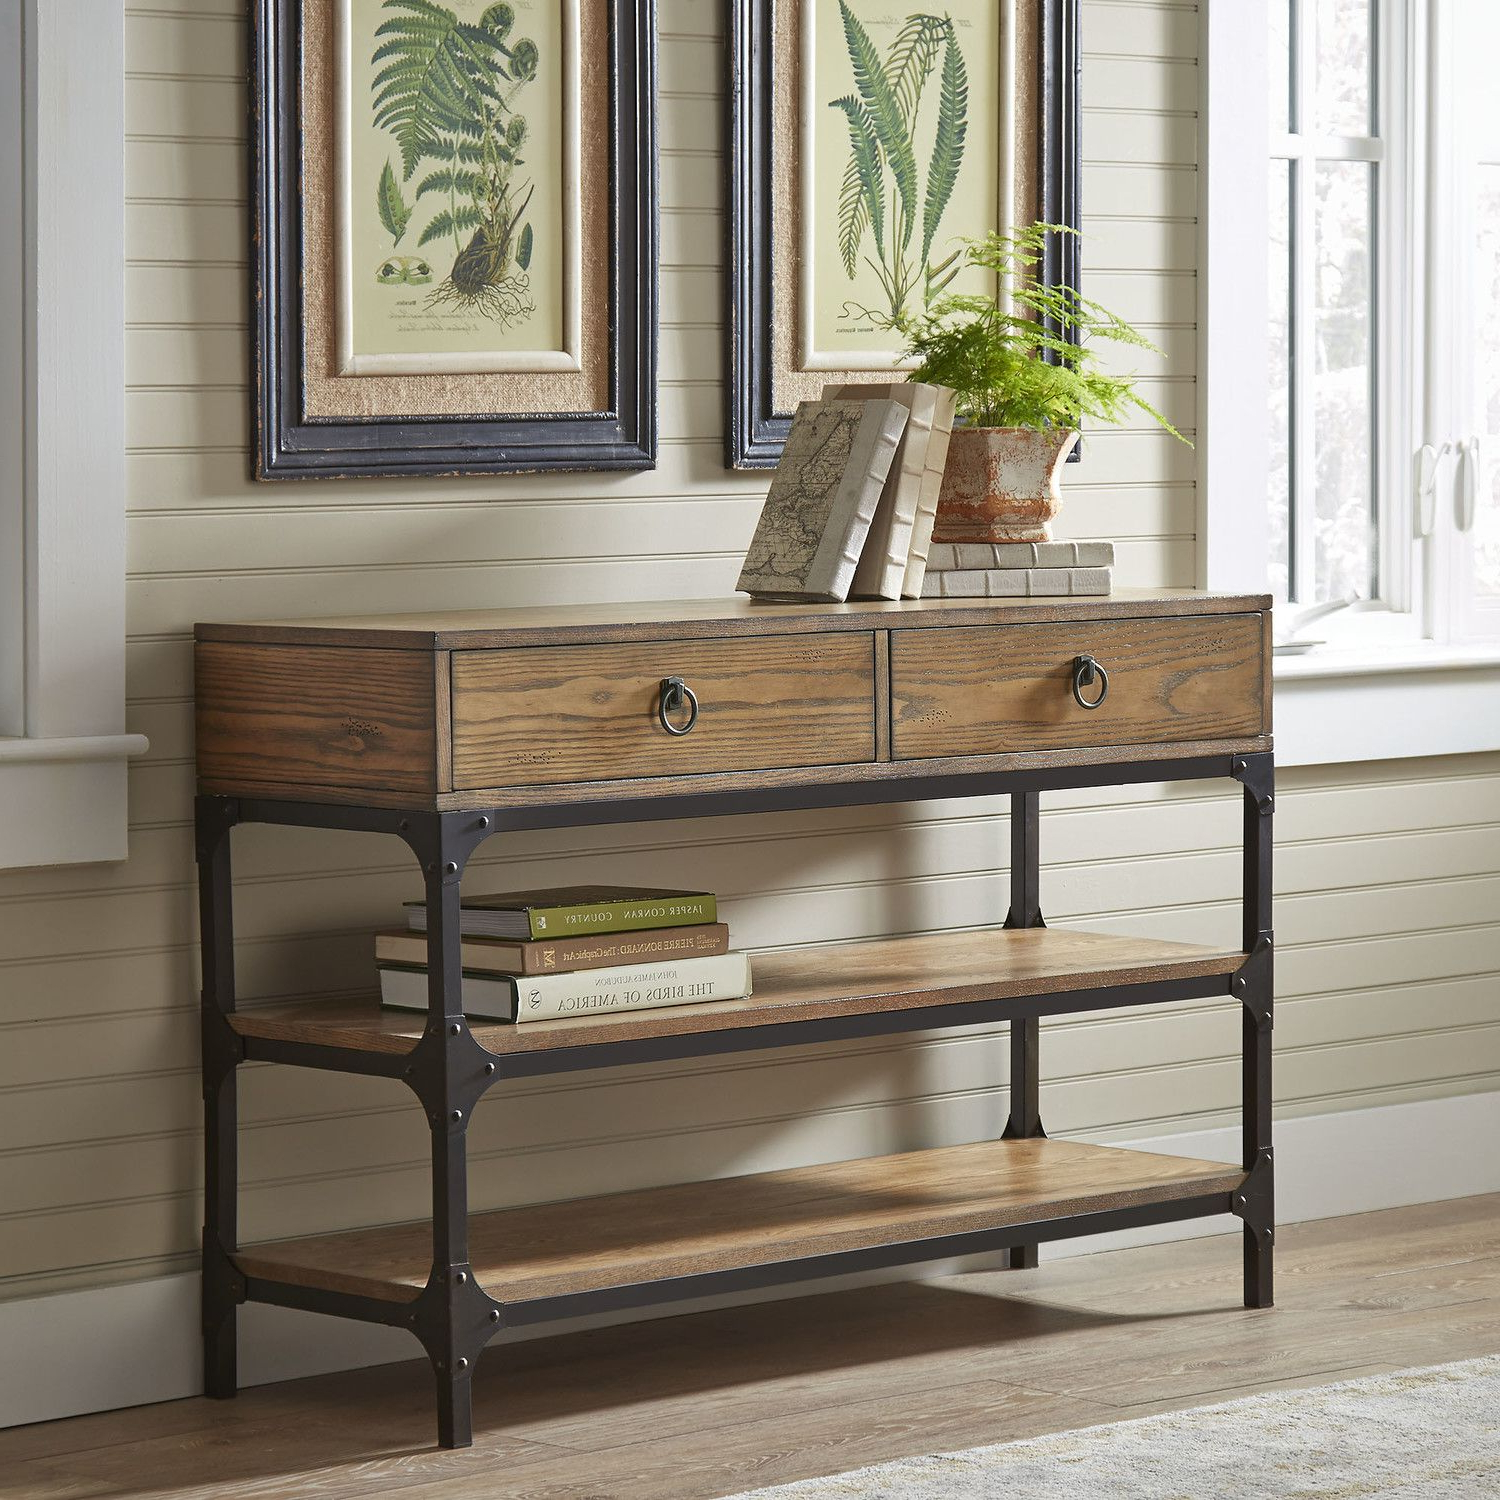 Tanner Console Table | Made With Ash Veneers And A Rustic Metal Throughout Mix Patina Metal Frame Console Tables (View 17 of 20)